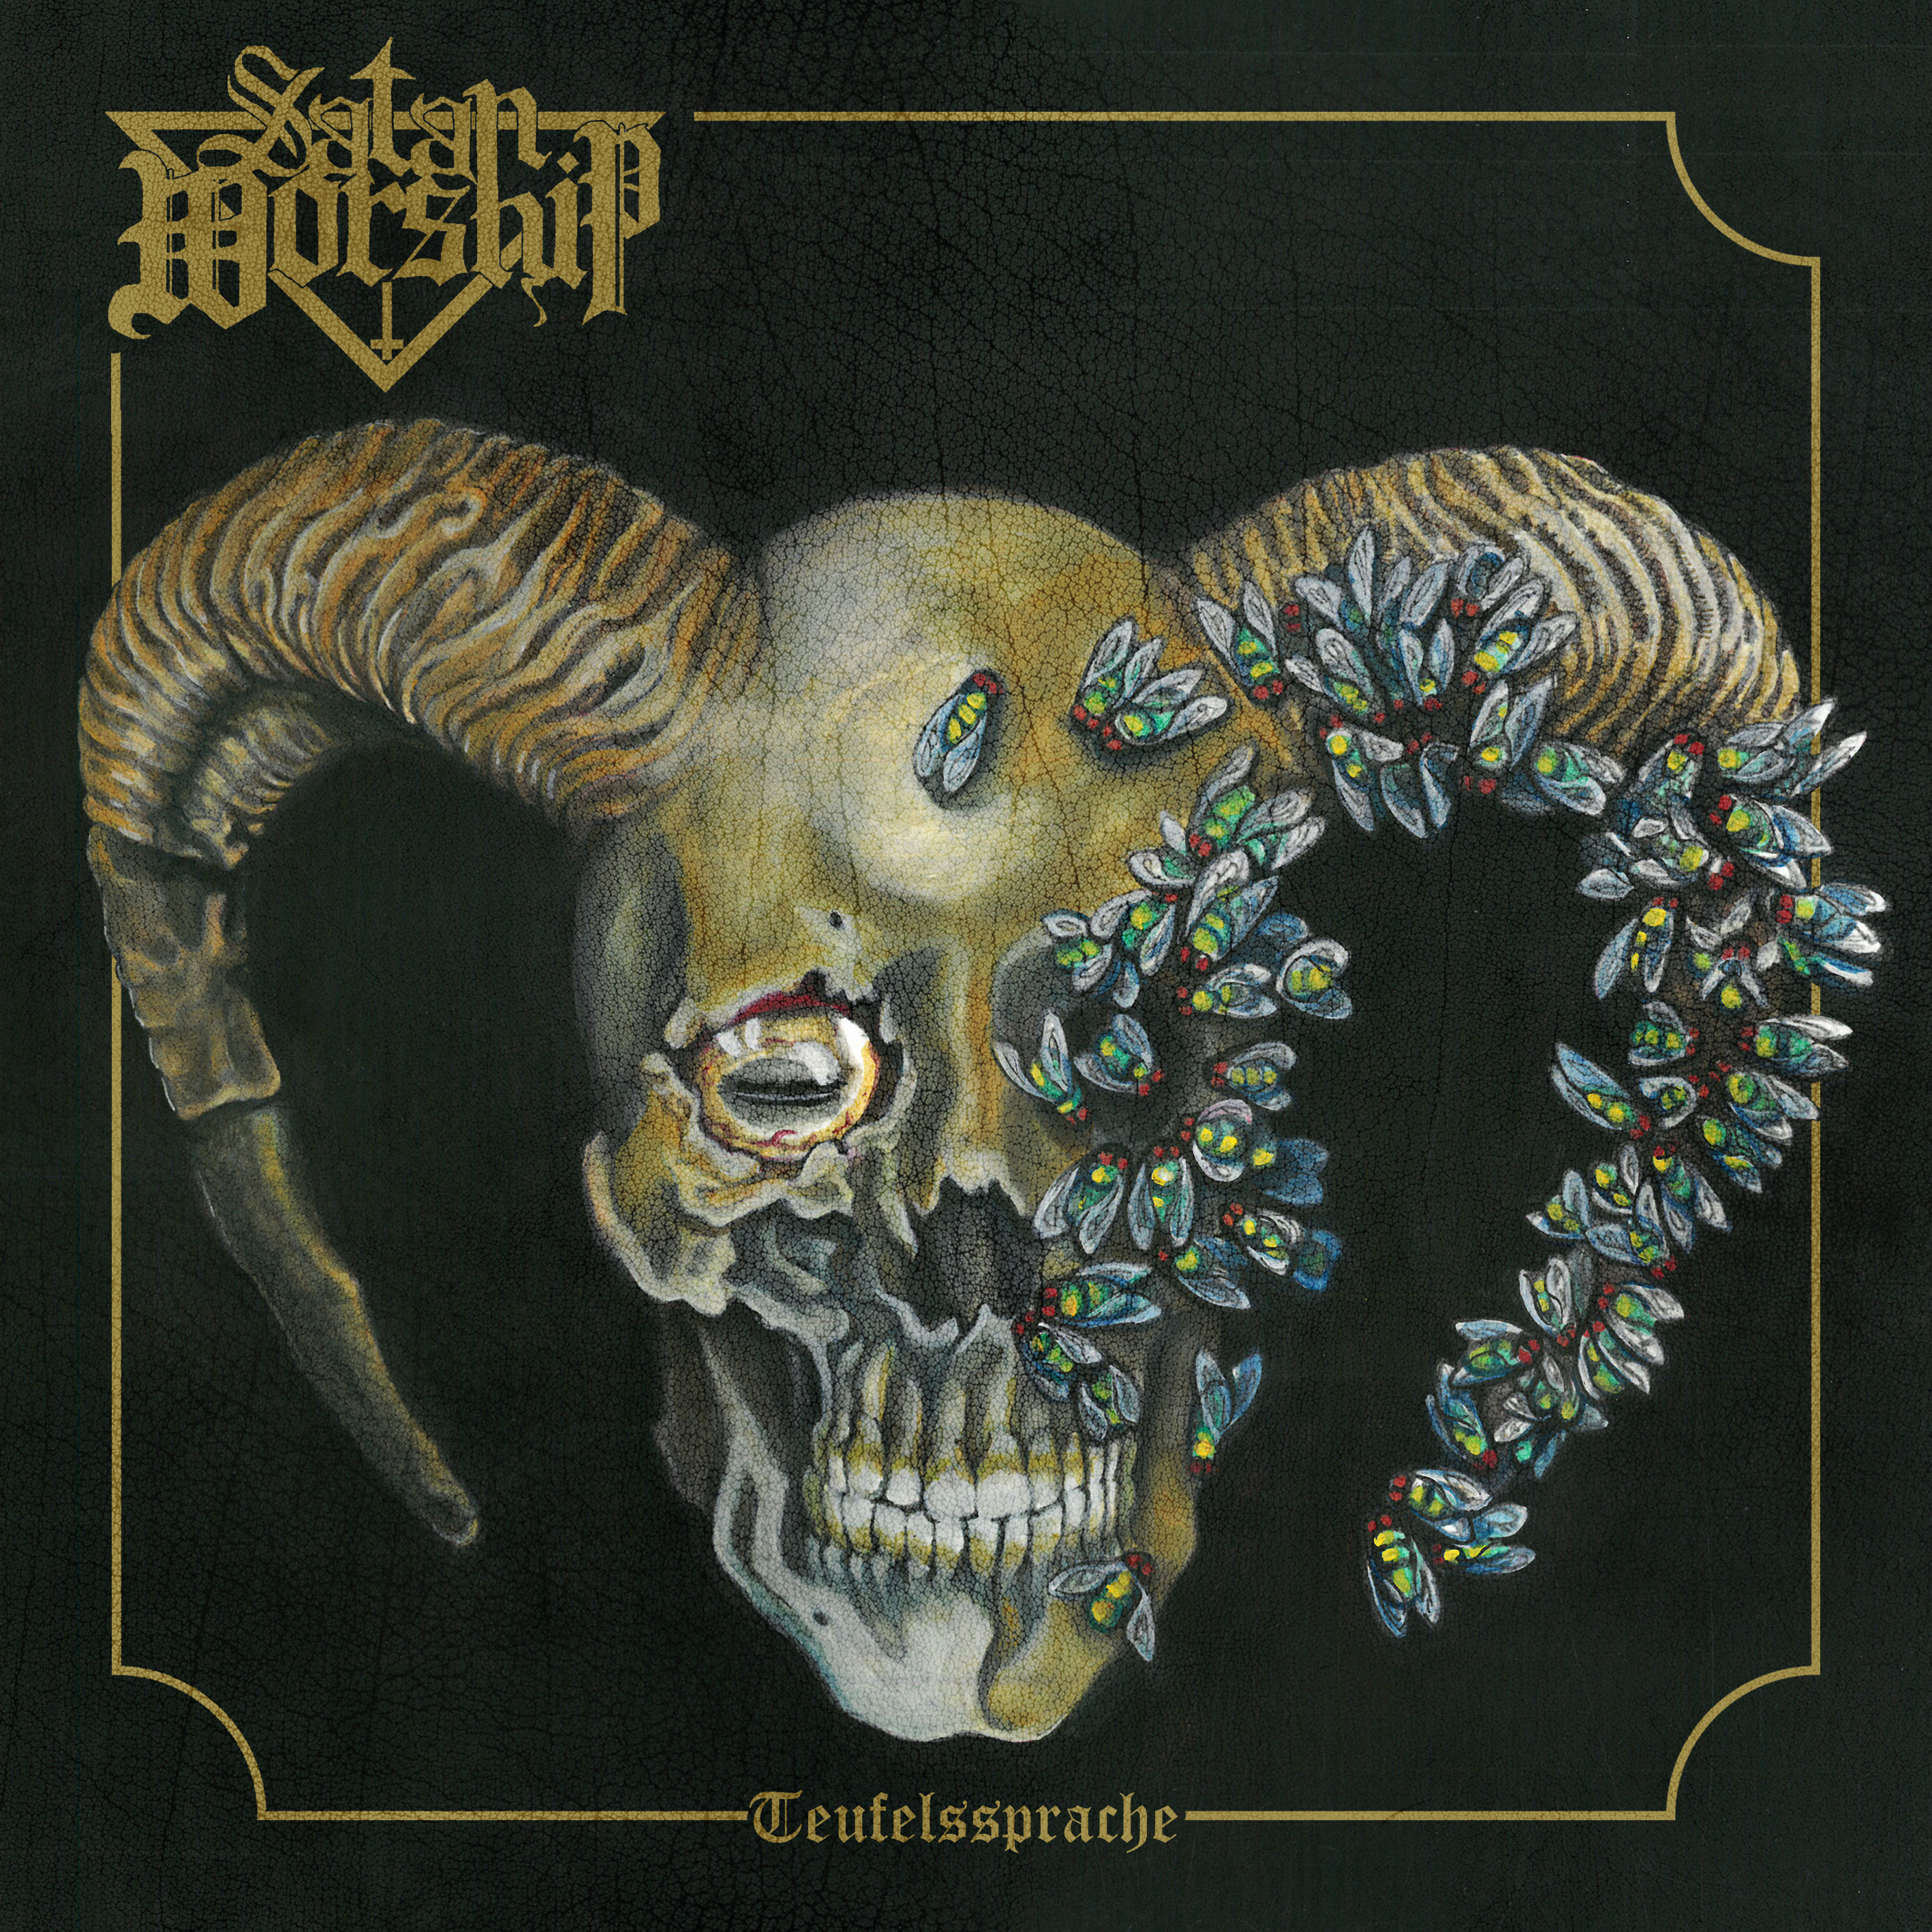 satan-worship-teufelssprache-ein-album-review